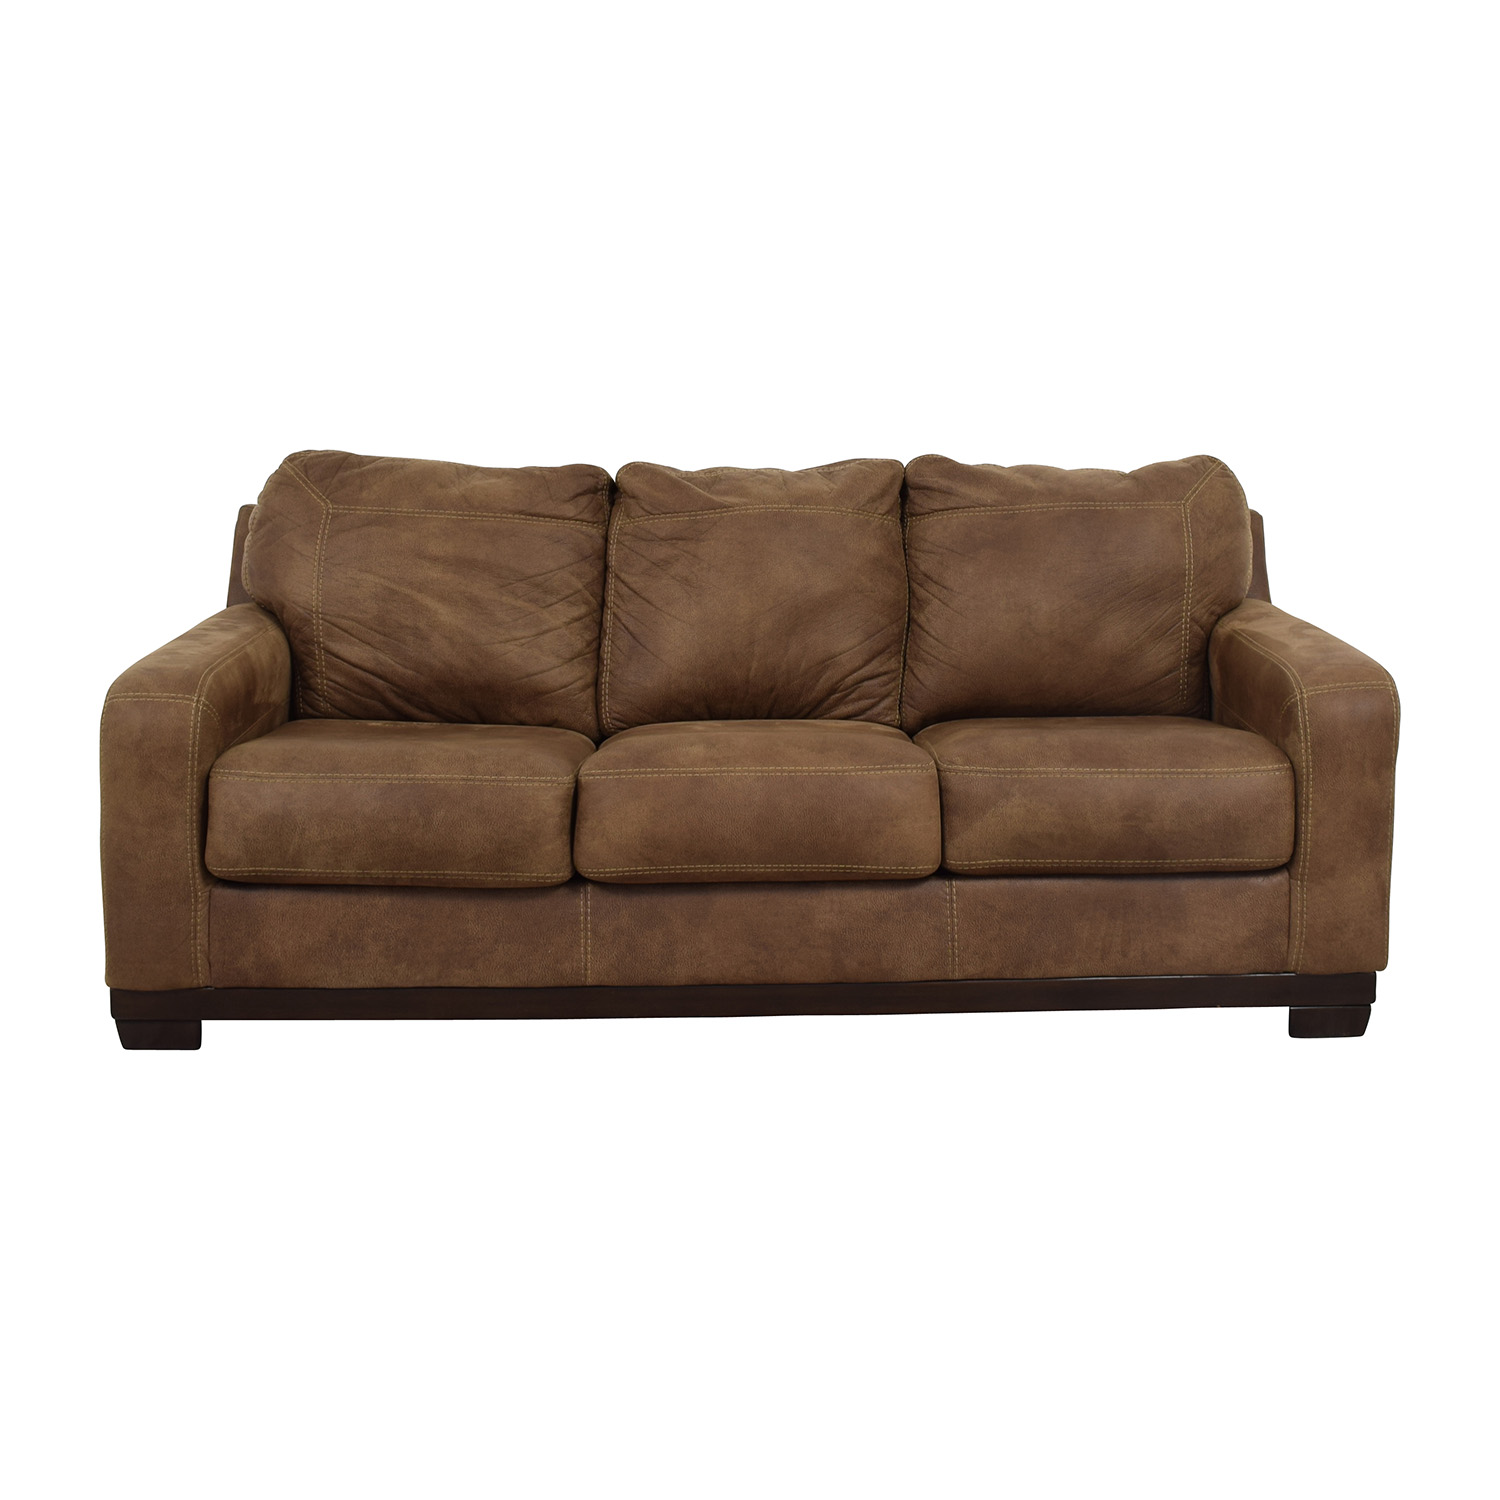 Sofas Ashley 79 Off Ashley Furniture Kylun Brown Three Thesofa